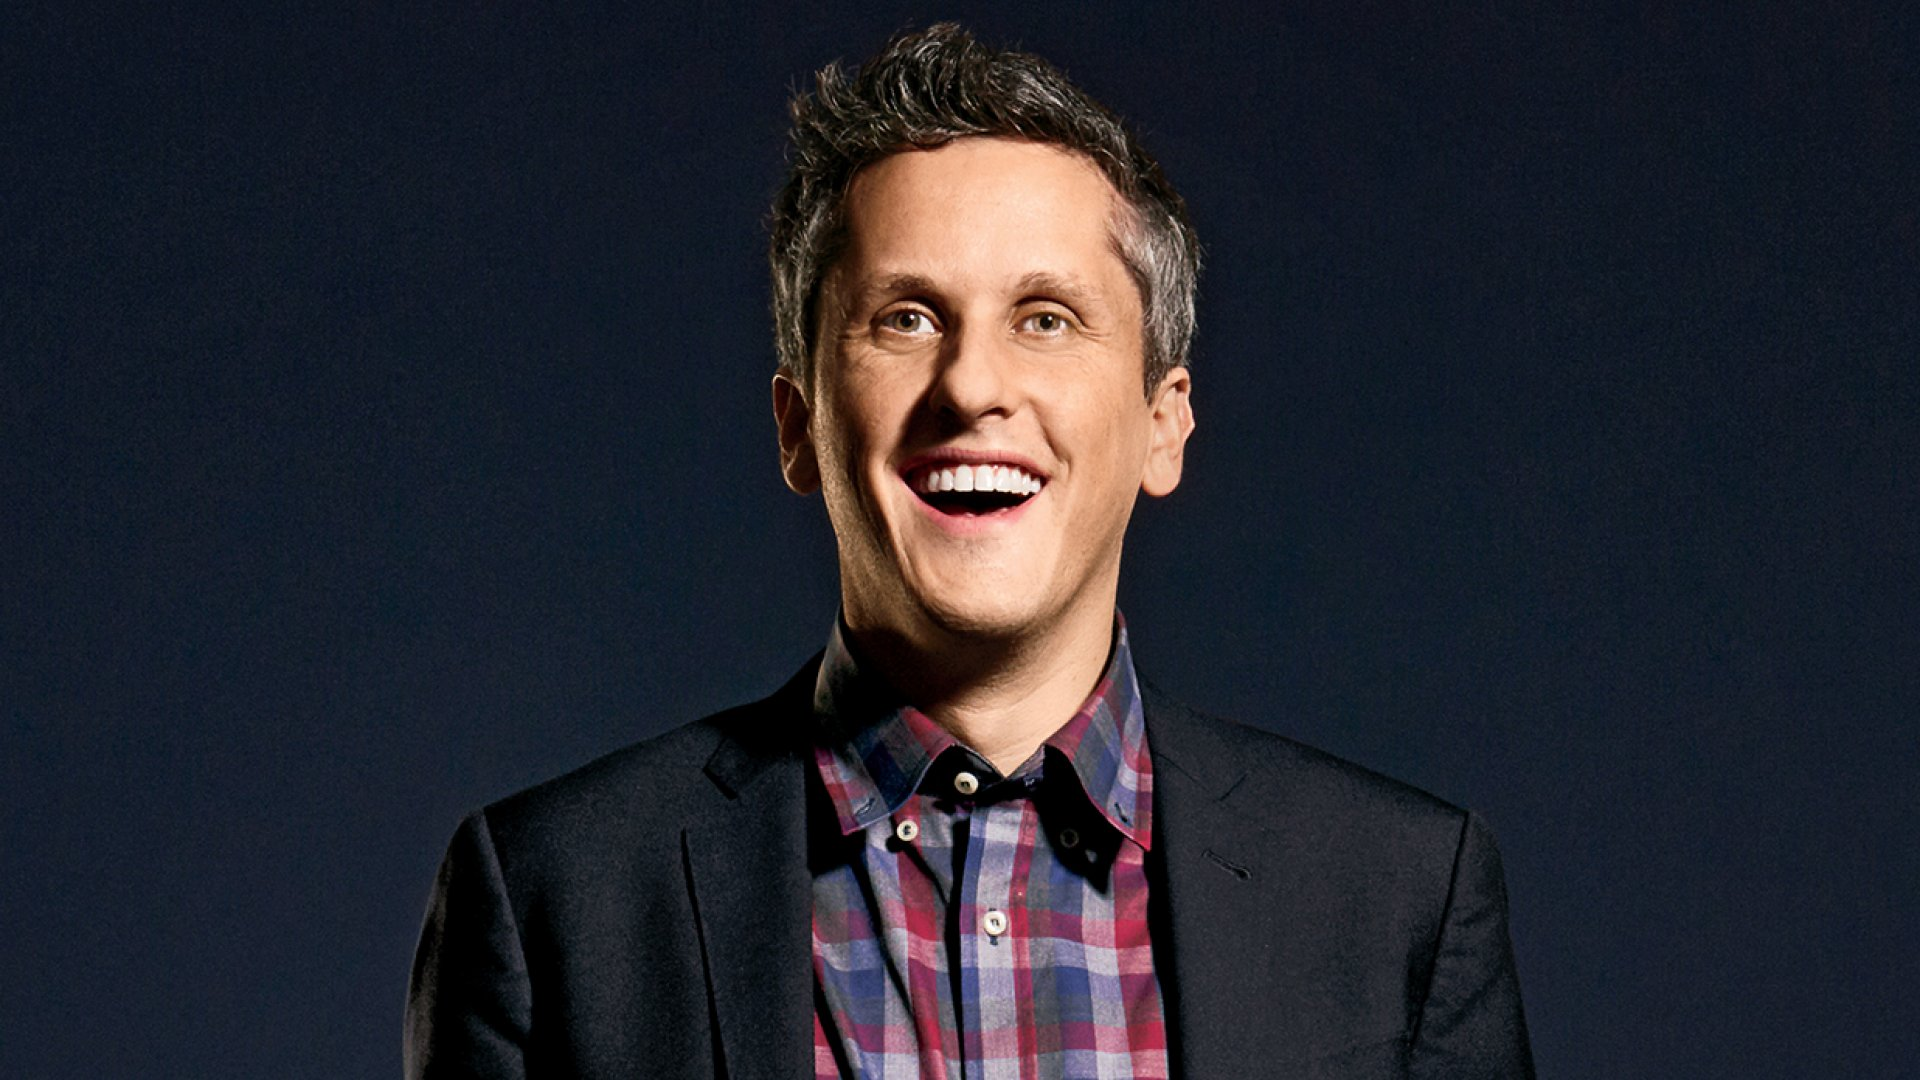 Levie, who founded his company in a USC dorm room with Sam Ghods, Jeff Queisser, and Dylan Smith, was Inc.'s Entrepreneur of the Year in 2014.